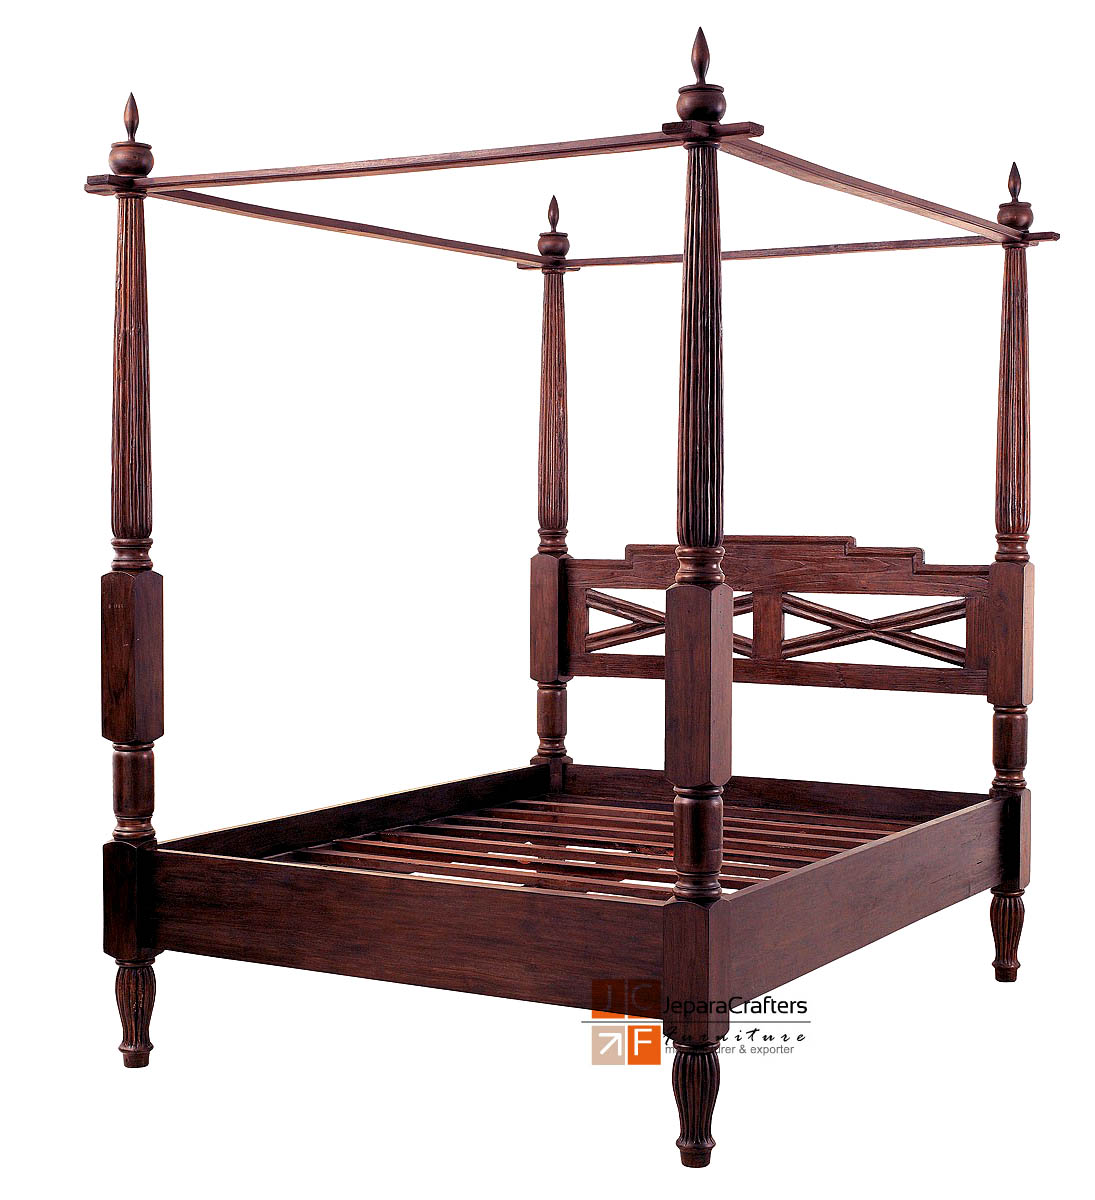 Bali Antique Canopy Beds Frame Solid Teak Wood Colonial Furniture